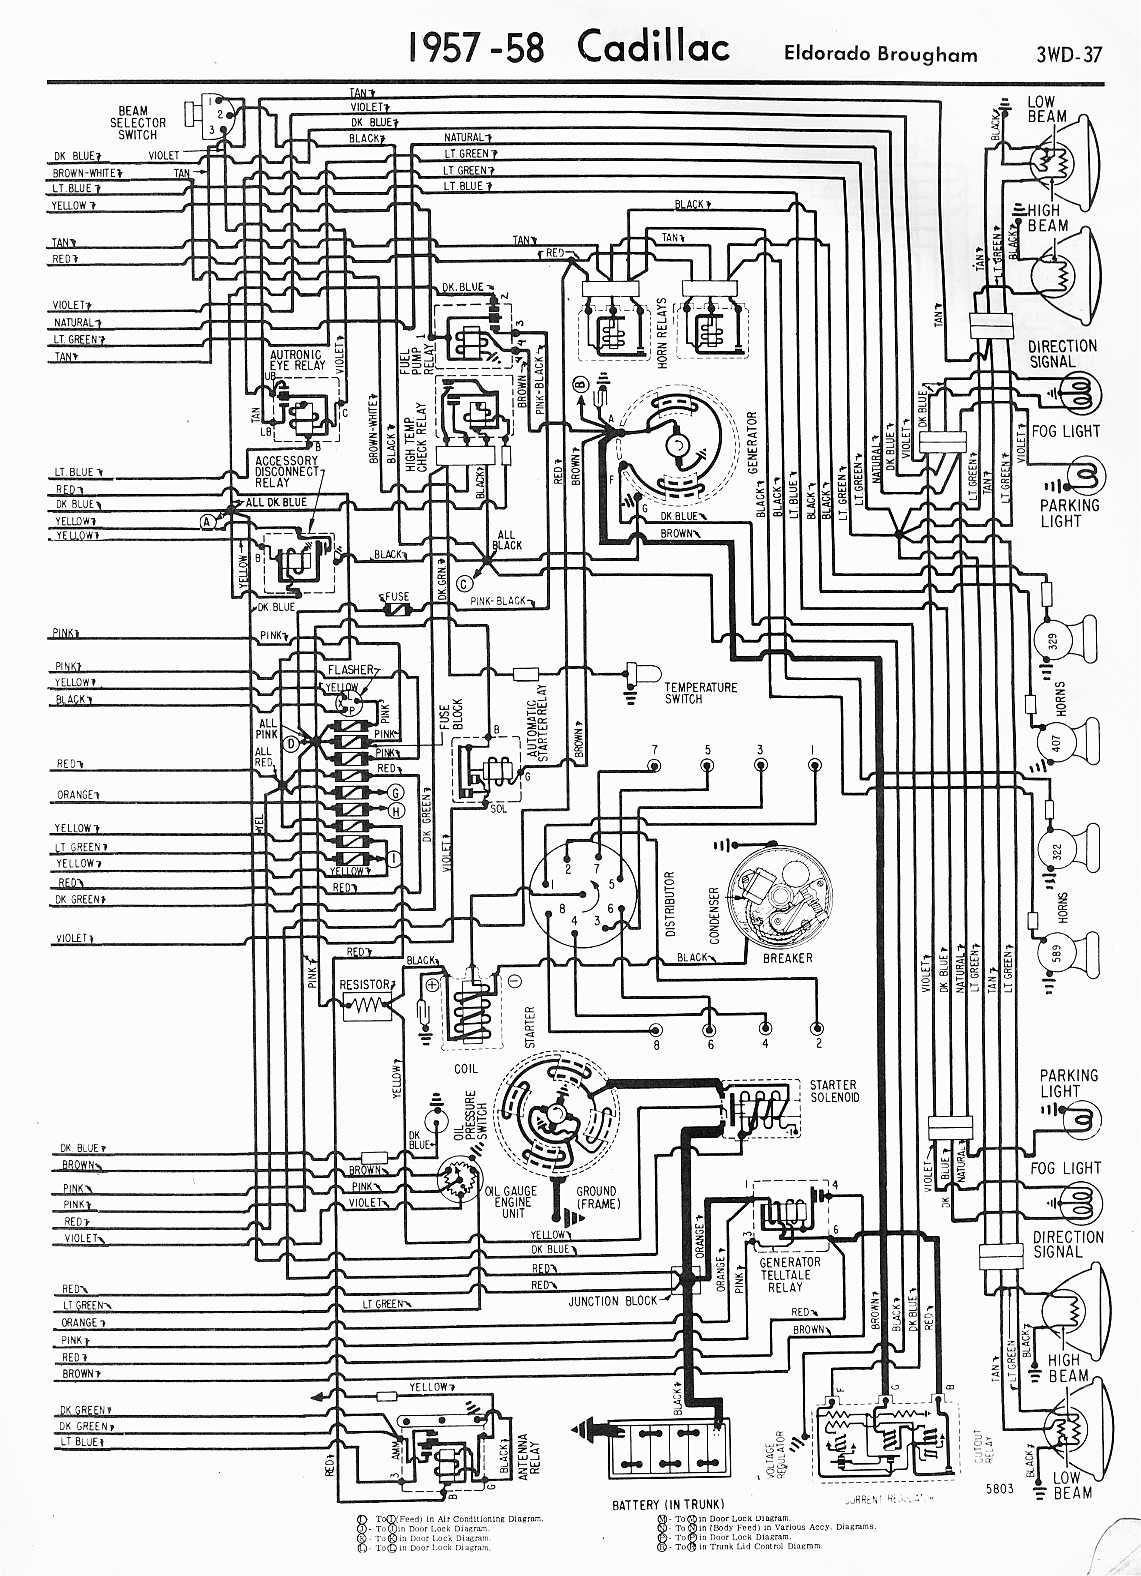 1967 Cadillac Deville Wiring Diagram Wiring Diagrams Element Element Miglioribanche It